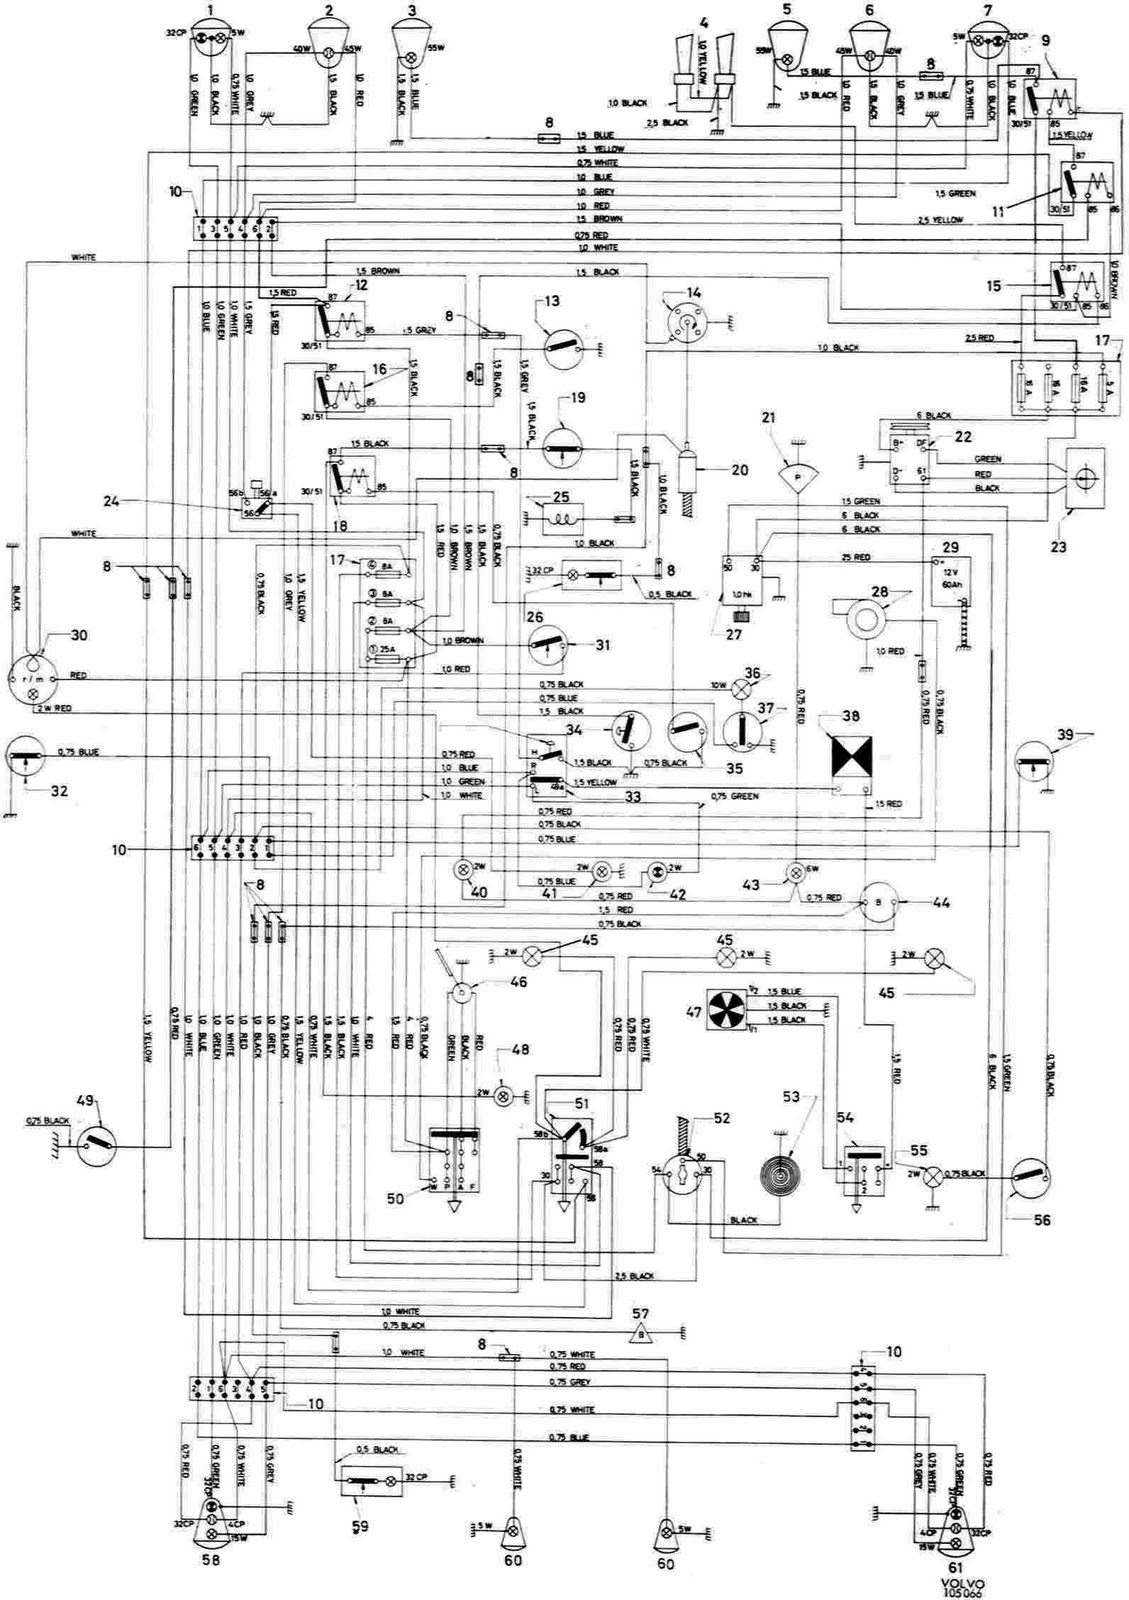 Fuse Box Diagram For Saab 9 3 Saab Wiring Diagram